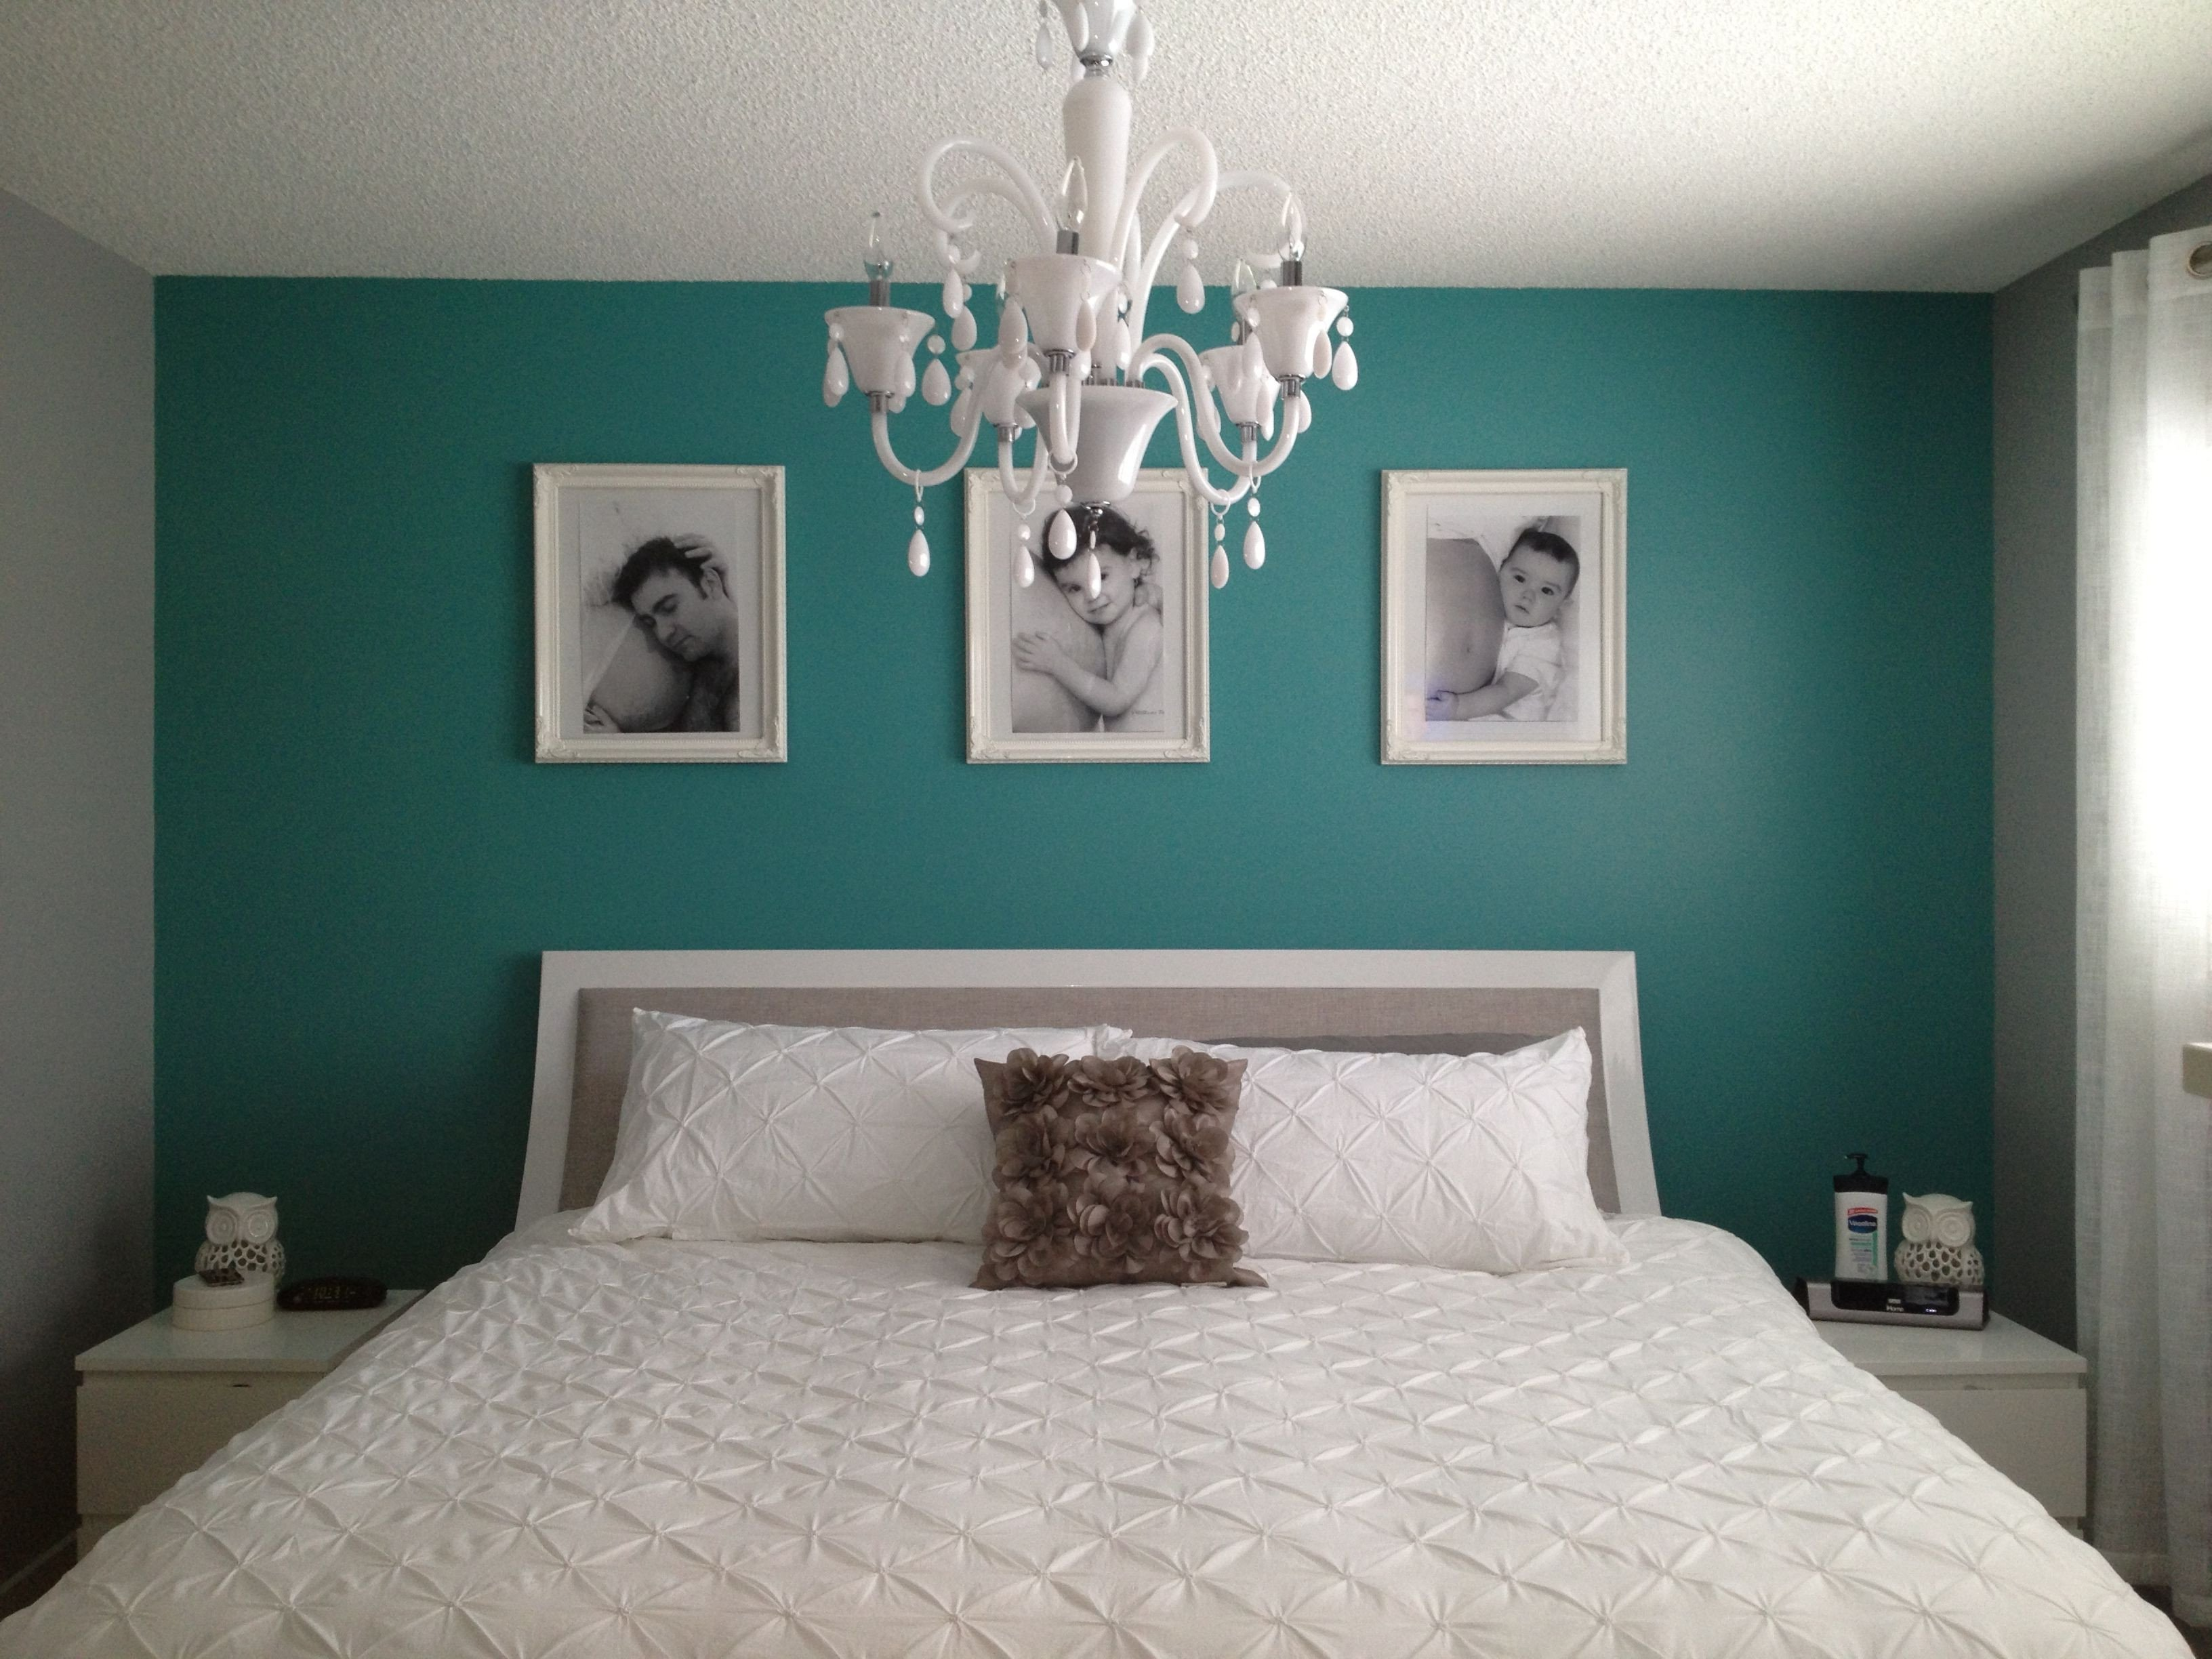 Teal and Gray Bedroom Decor Fresh Grey and Teal Bedroom Love This Room so Much so that I Am Going Change Mine This Weekend